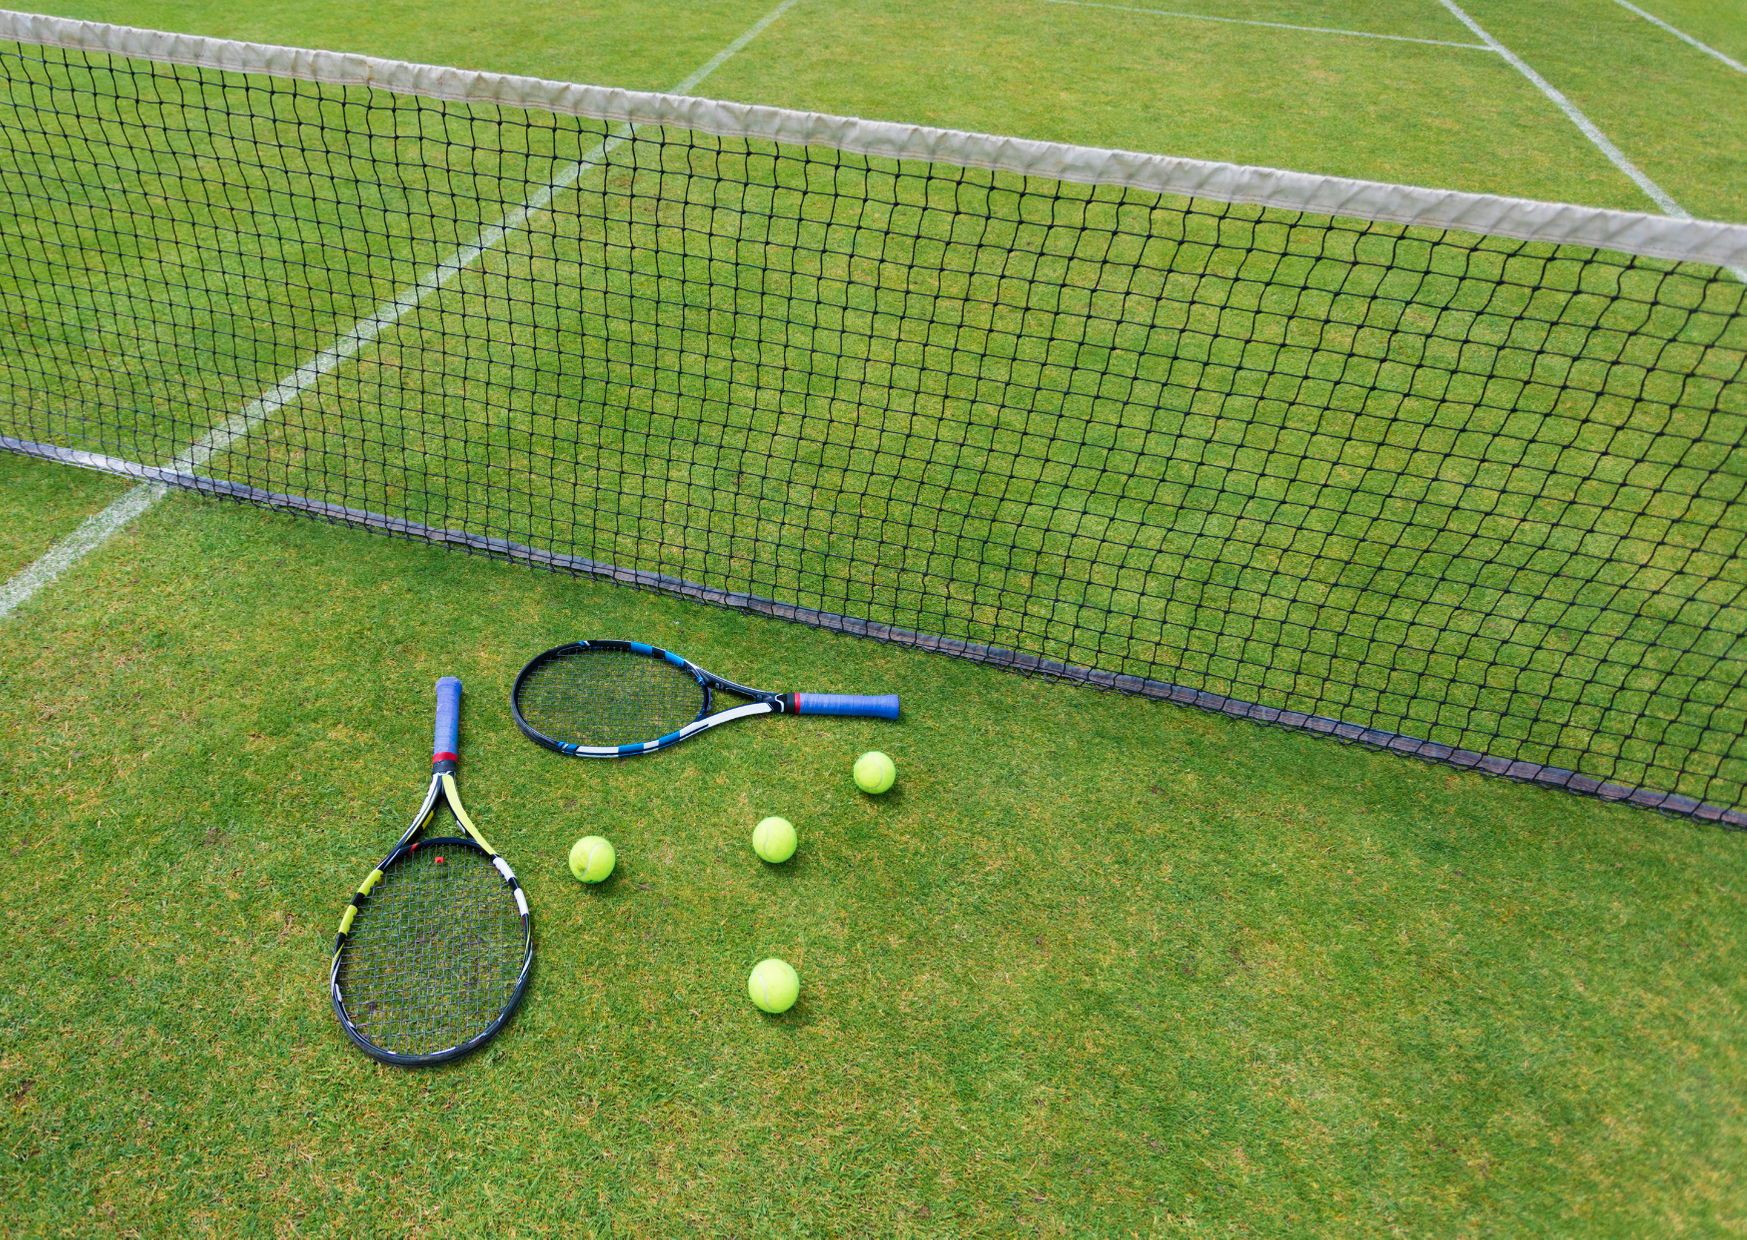 a tennis rackets with balls of Is Lawn Tennis an Indoor Game?